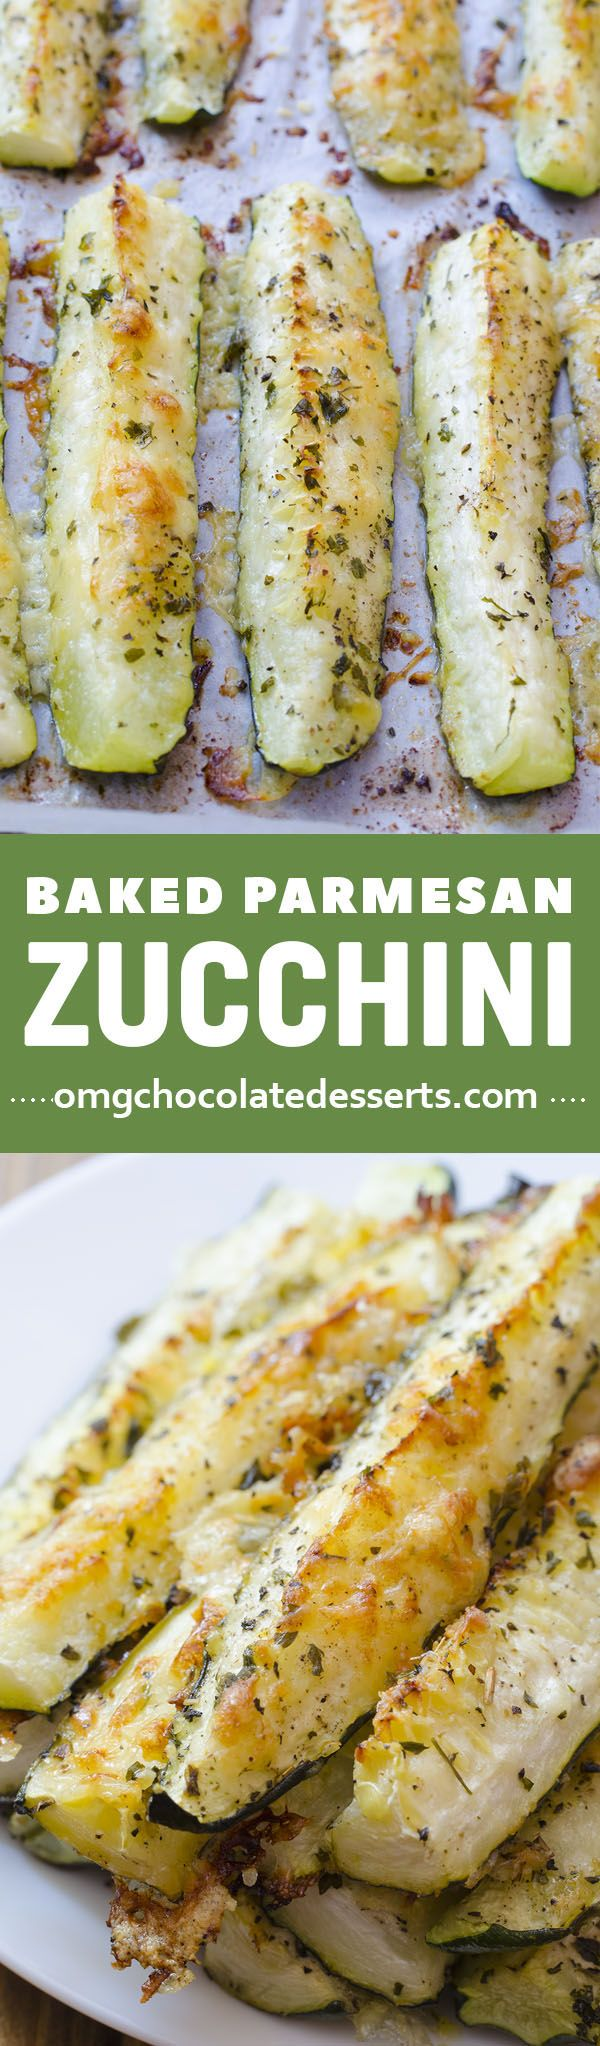 Baked Parmesan Zucchini is quick and easy recipe for delicious and healthy weeknight dinner side dish.